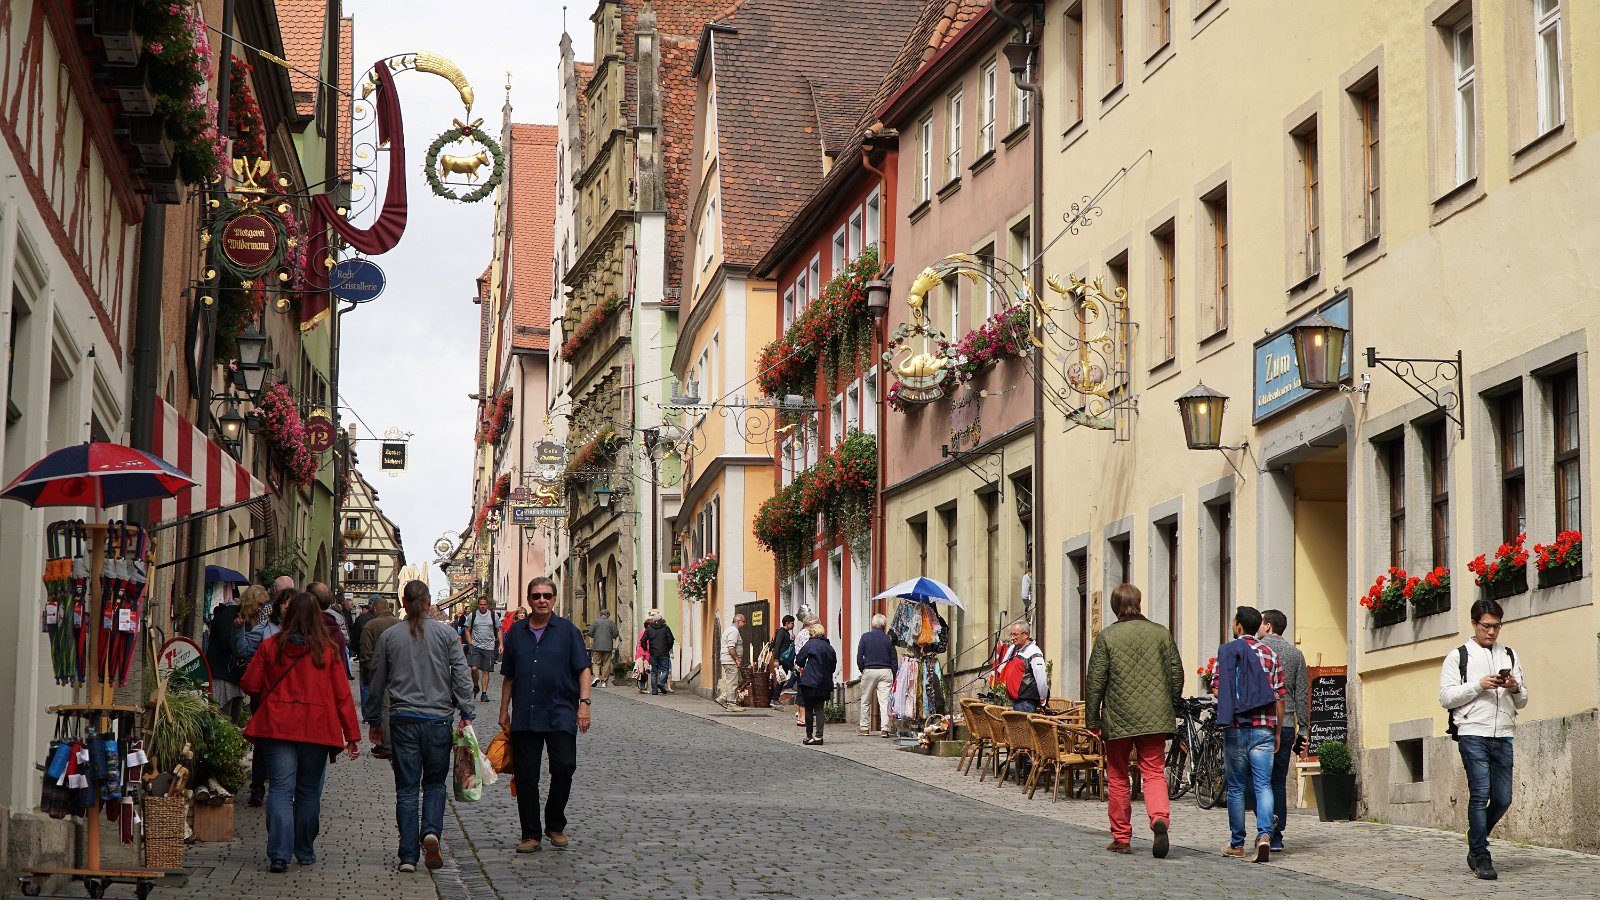 Exploring the enchanting walled city of Rothenburg ob der Tauber